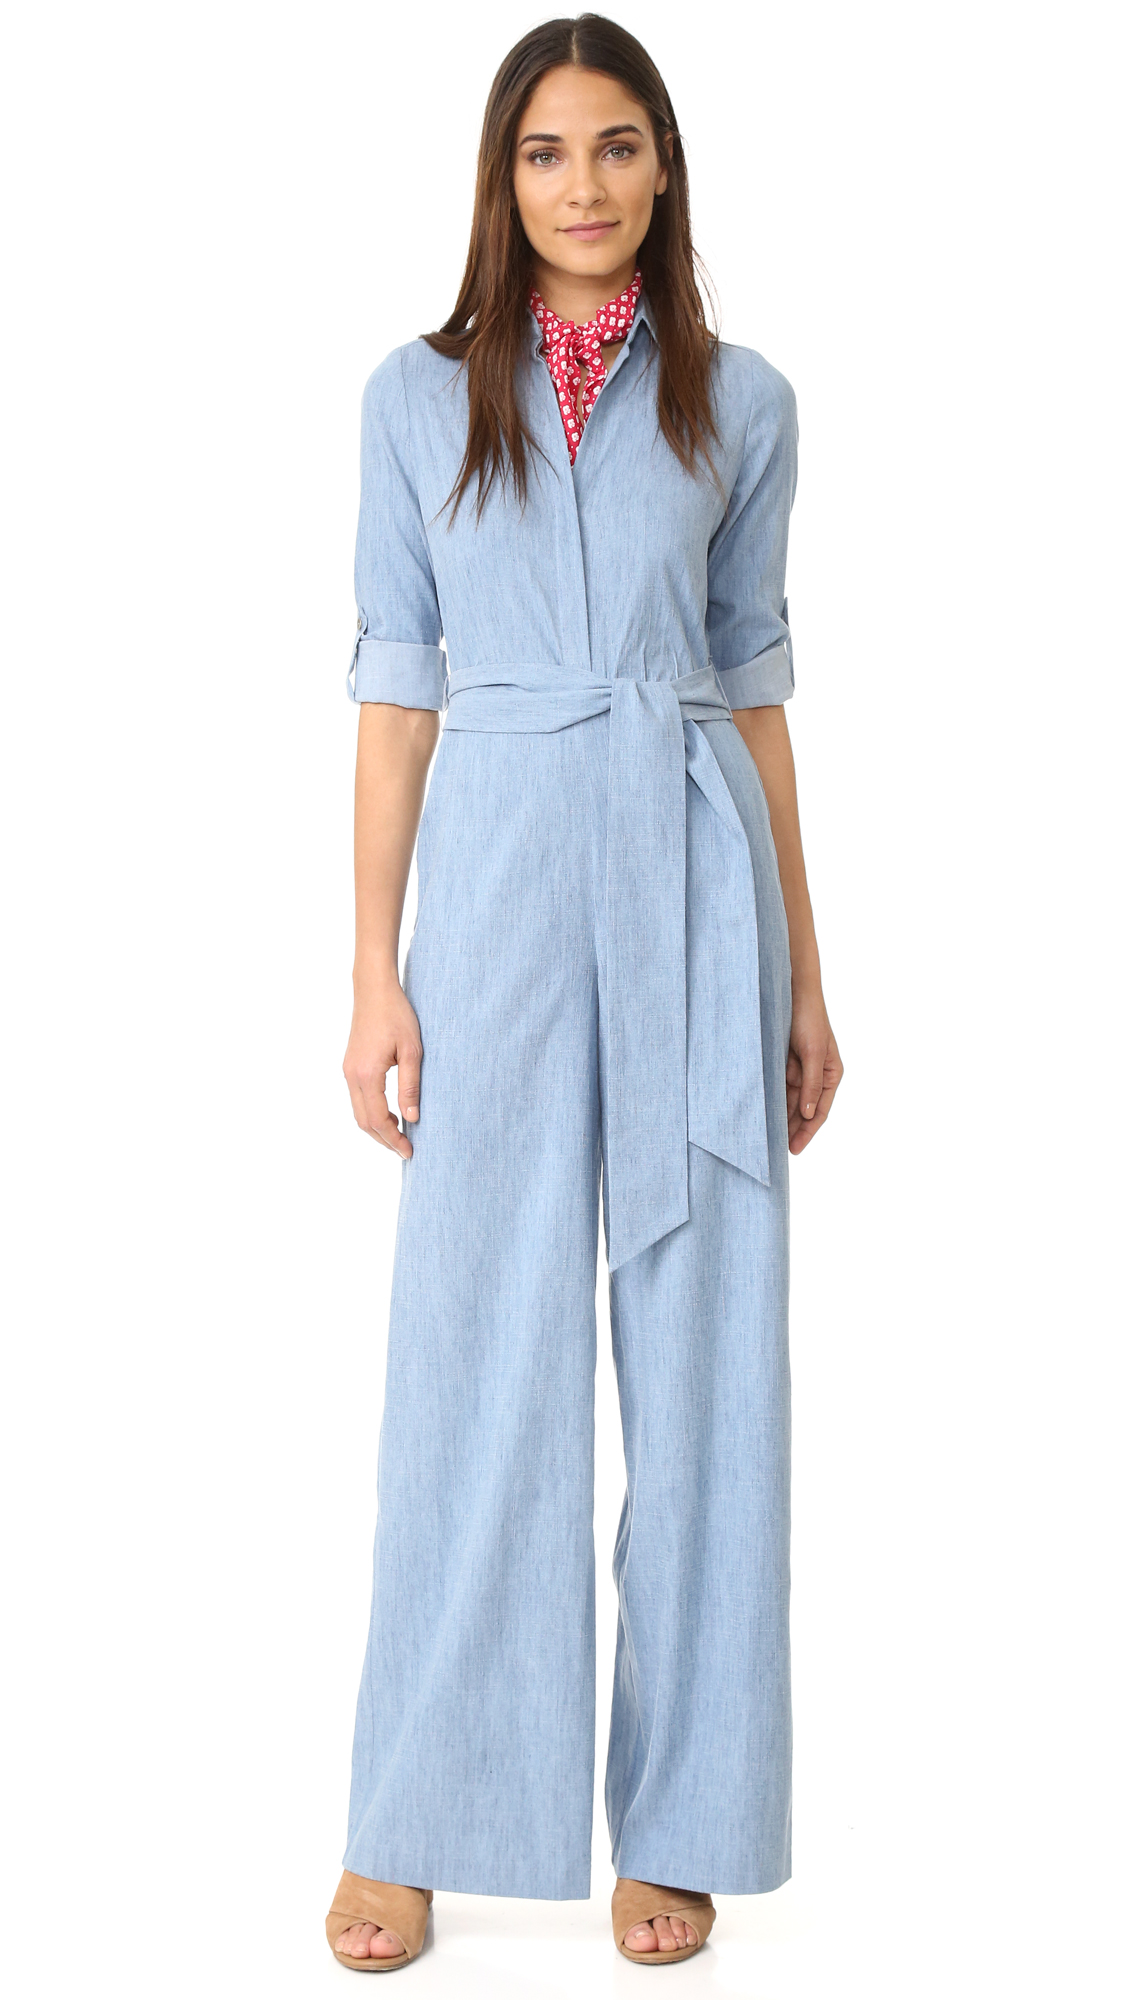 Alice + Olivia Casy Wide Leg Jumpsuit - Light Chambray at Shopbop